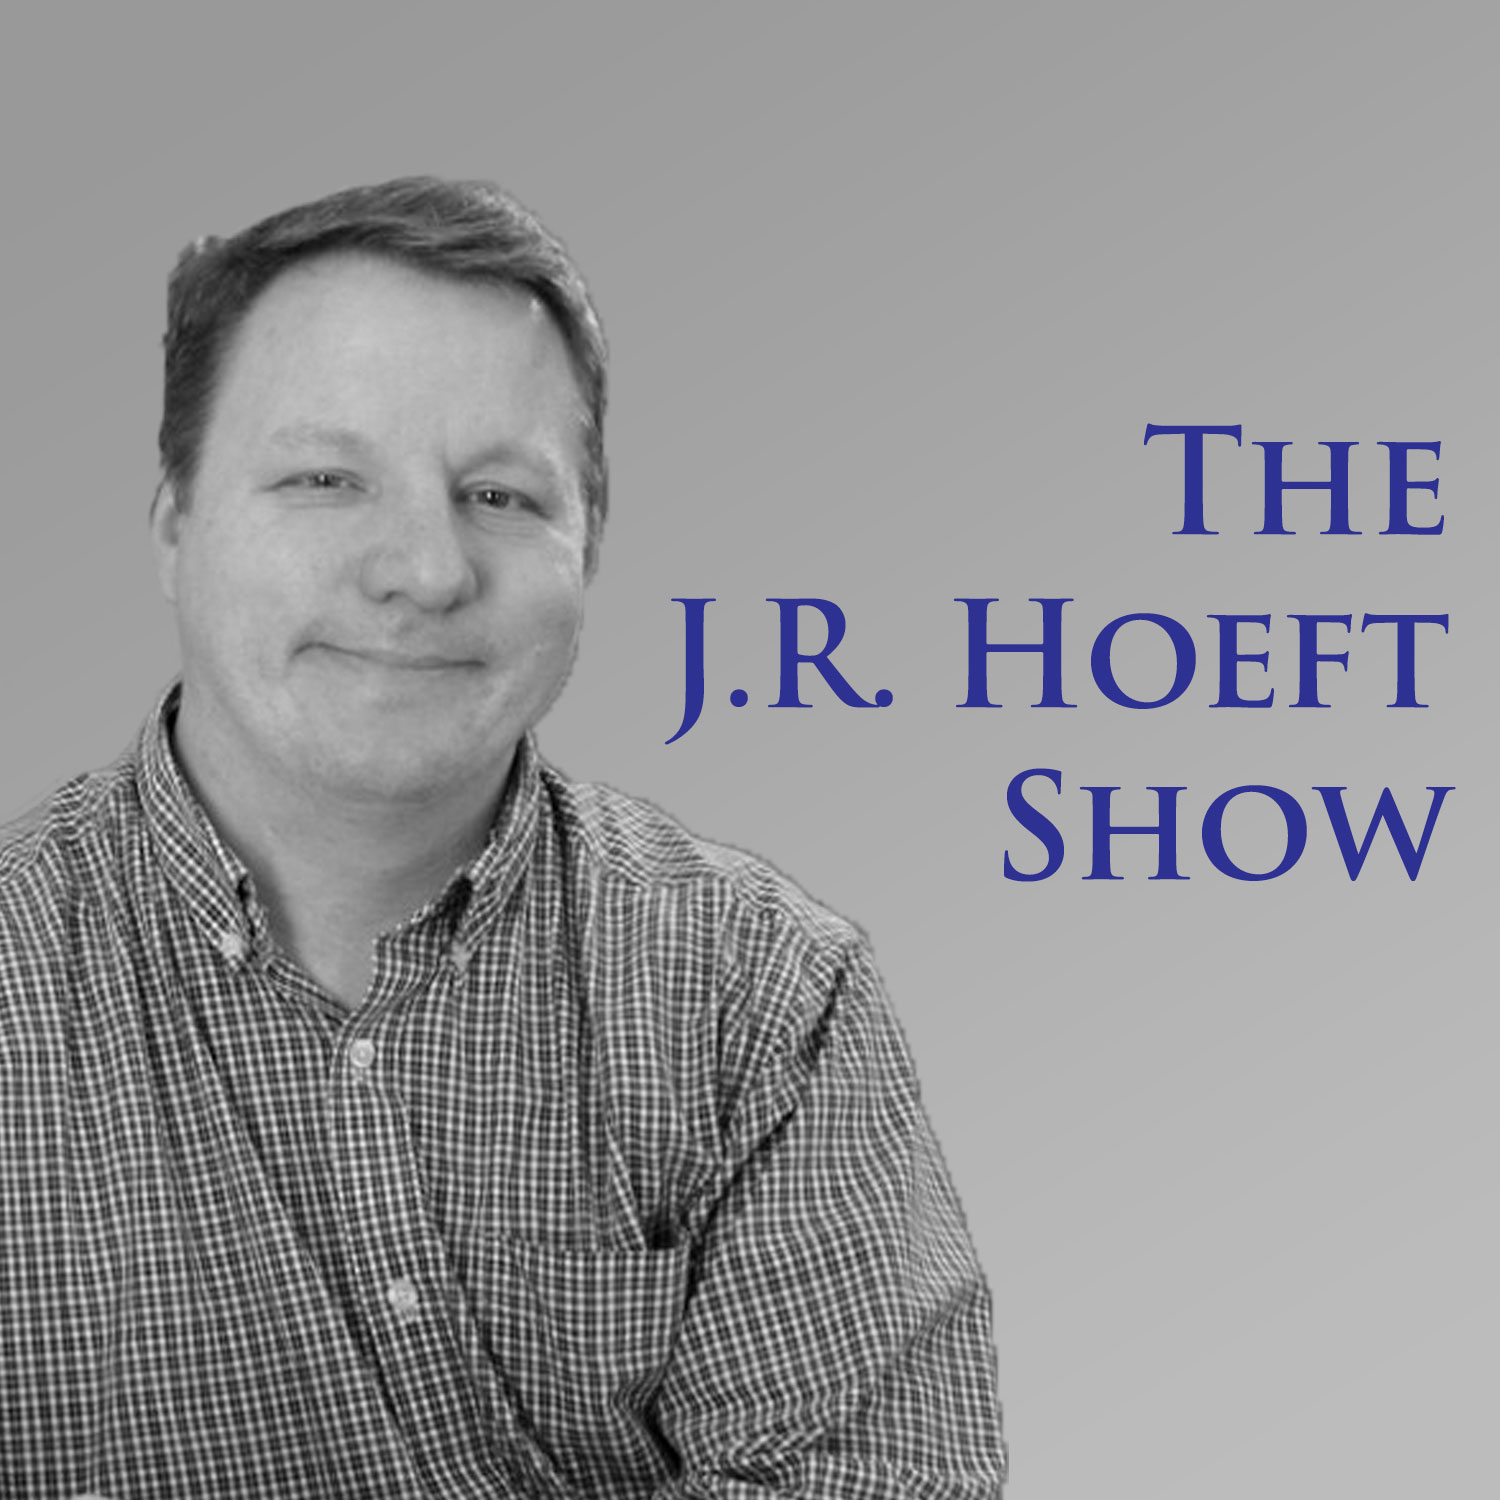 The J.R. Hoeft Show – The J.R. Hoeft Show